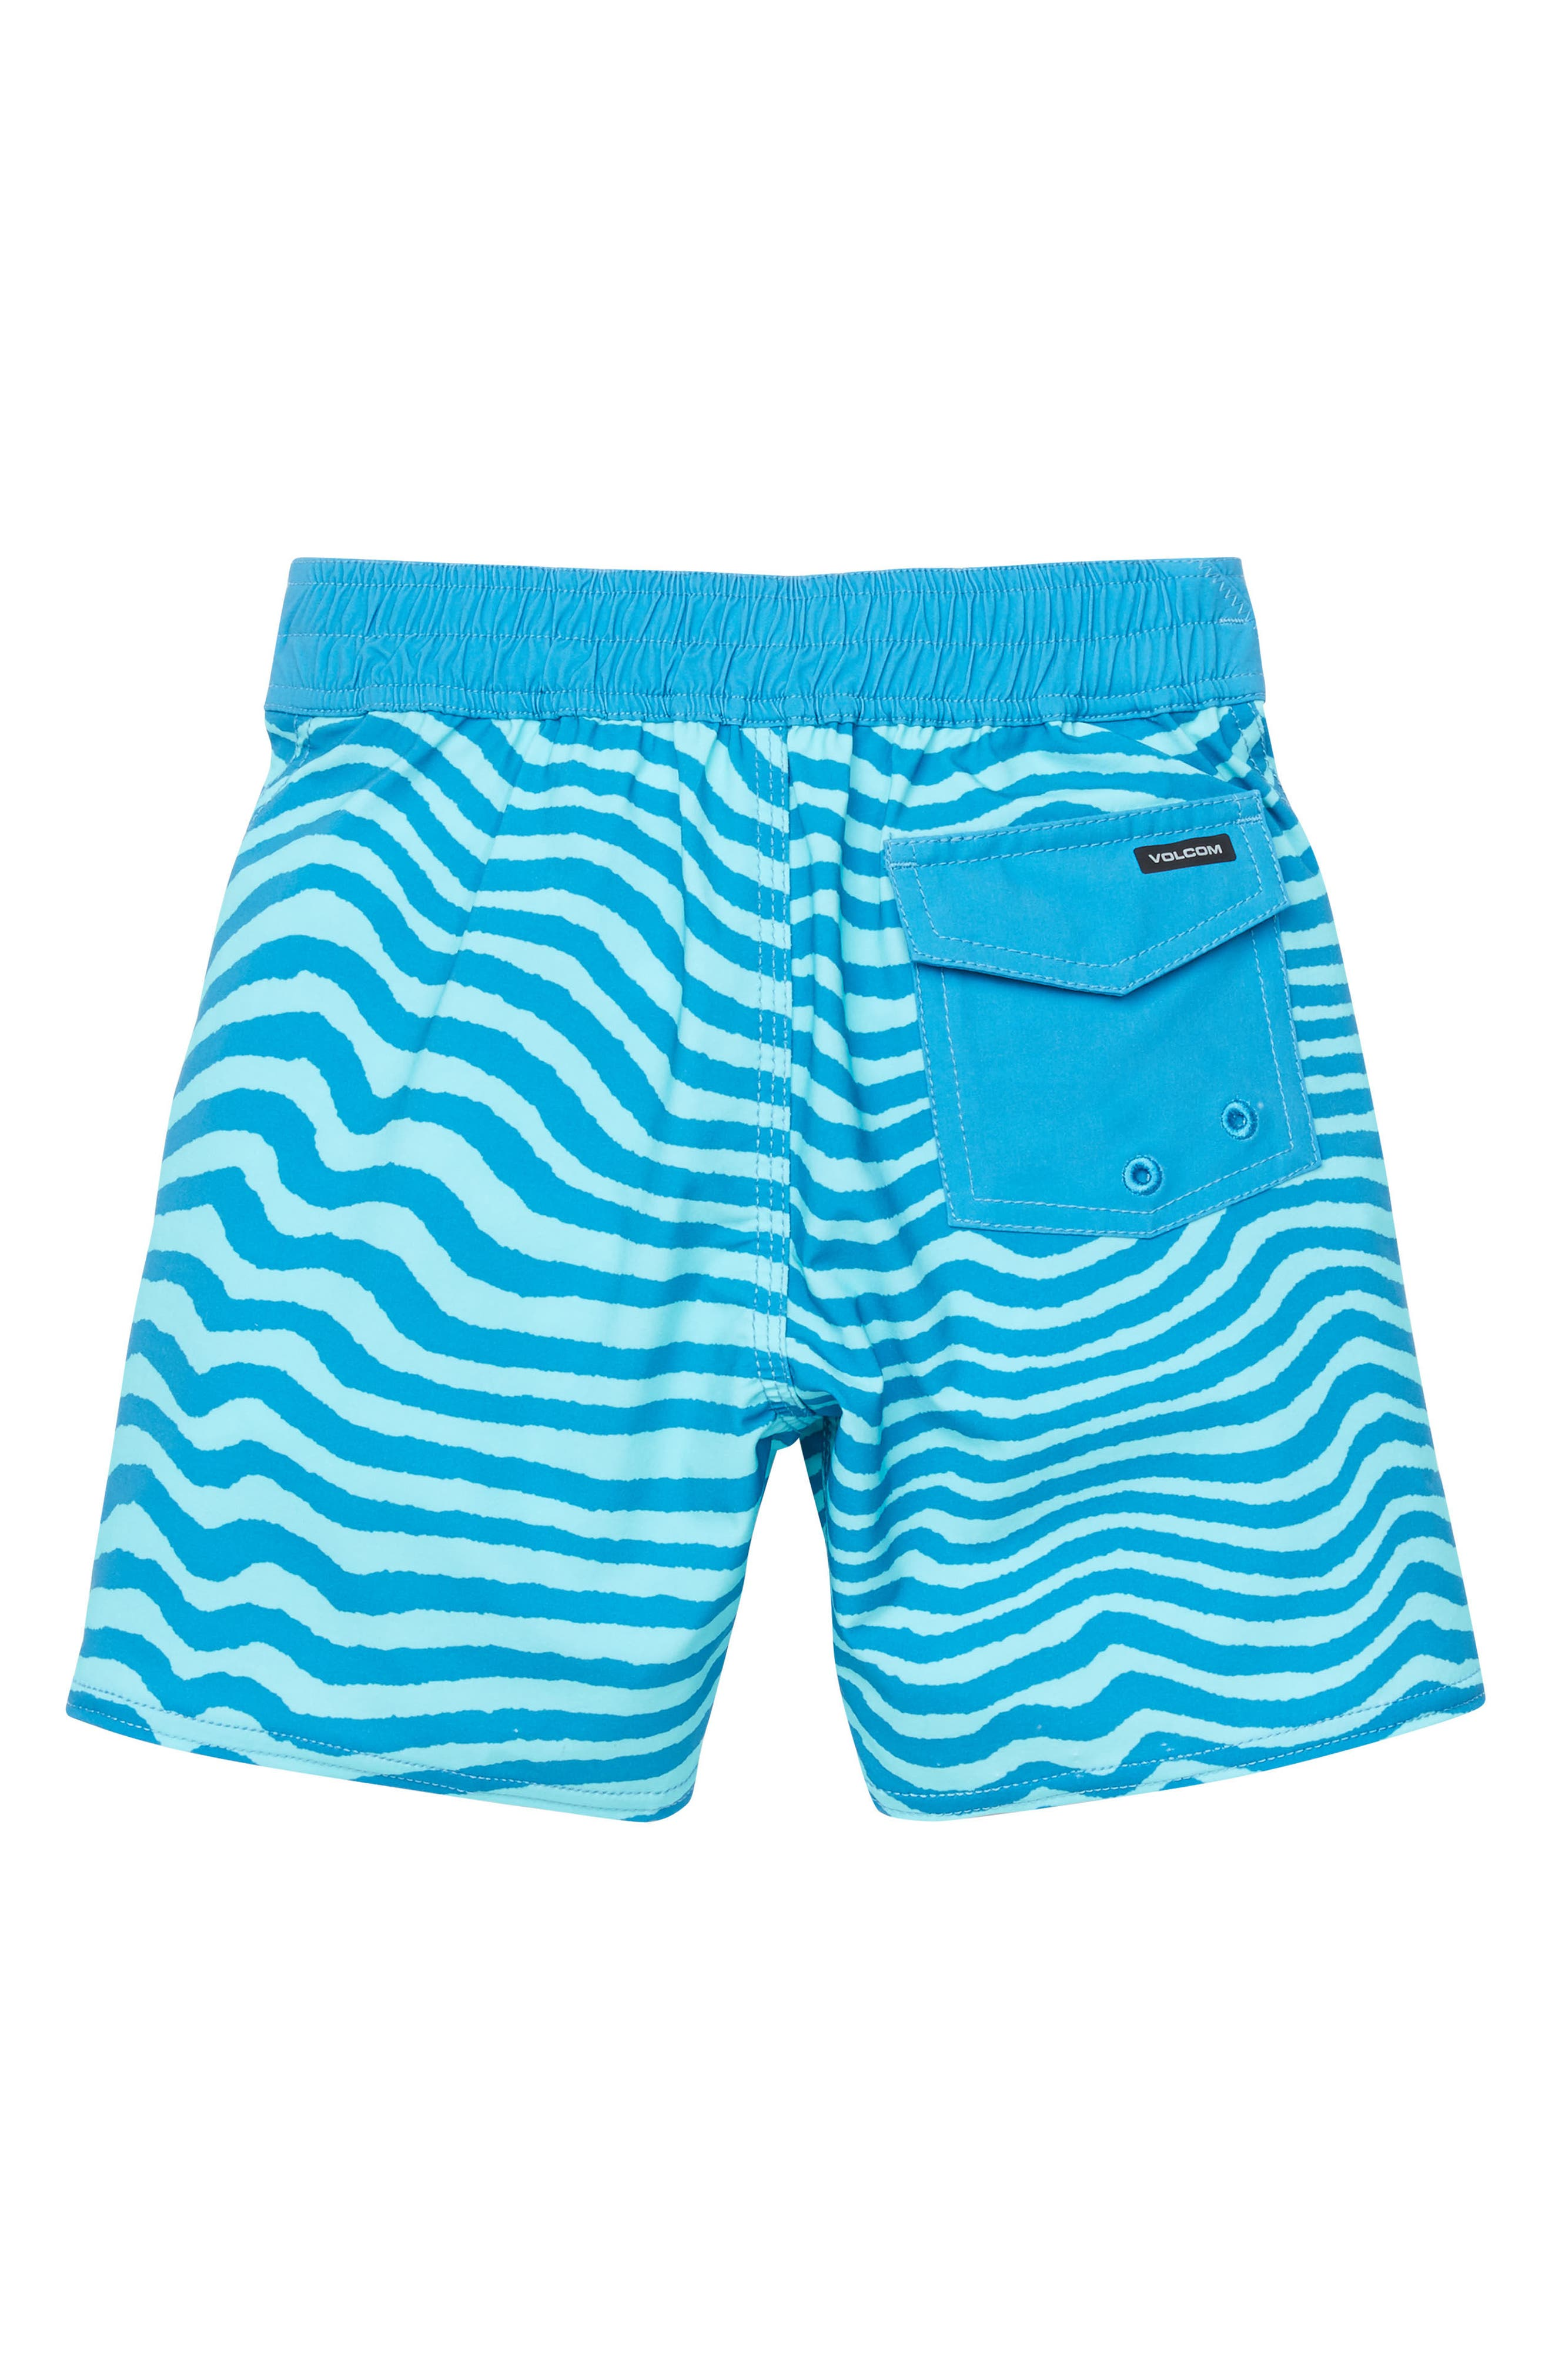 Mag Vibes Board Shorts,                             Alternate thumbnail 2, color,                             443